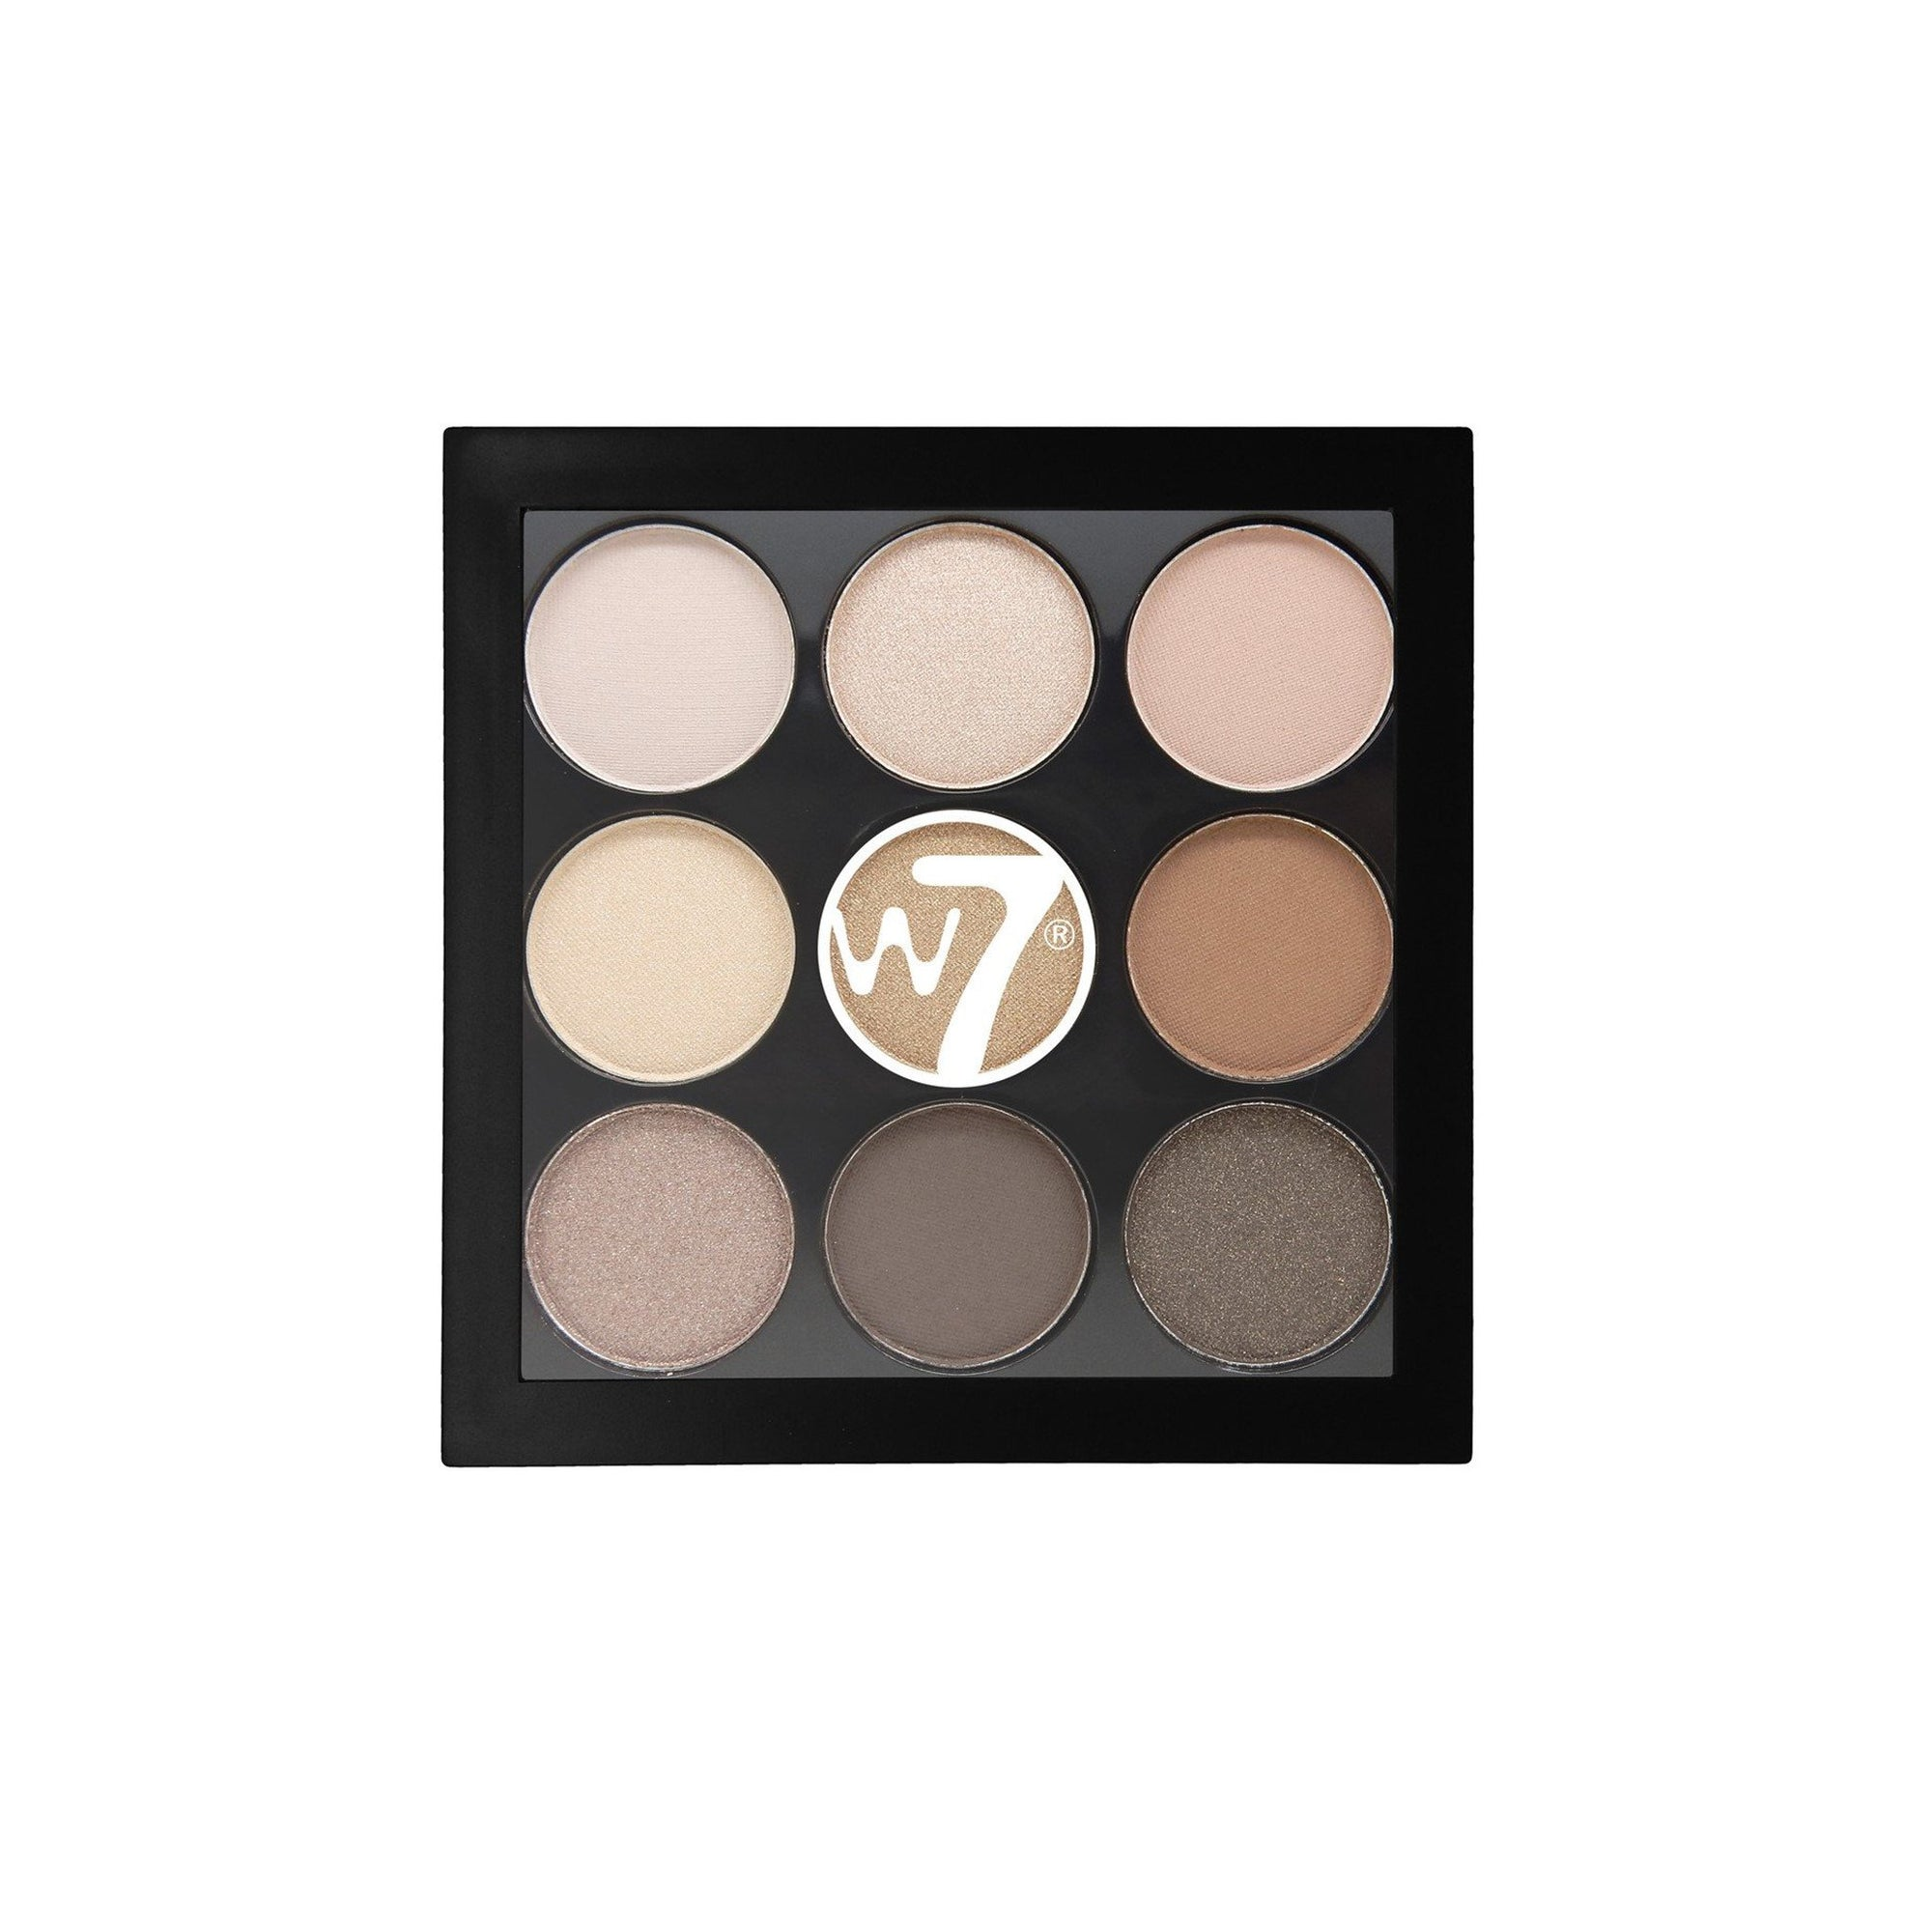 W7 Naughty Nine Eyeshadow Palette - Arabian Nights